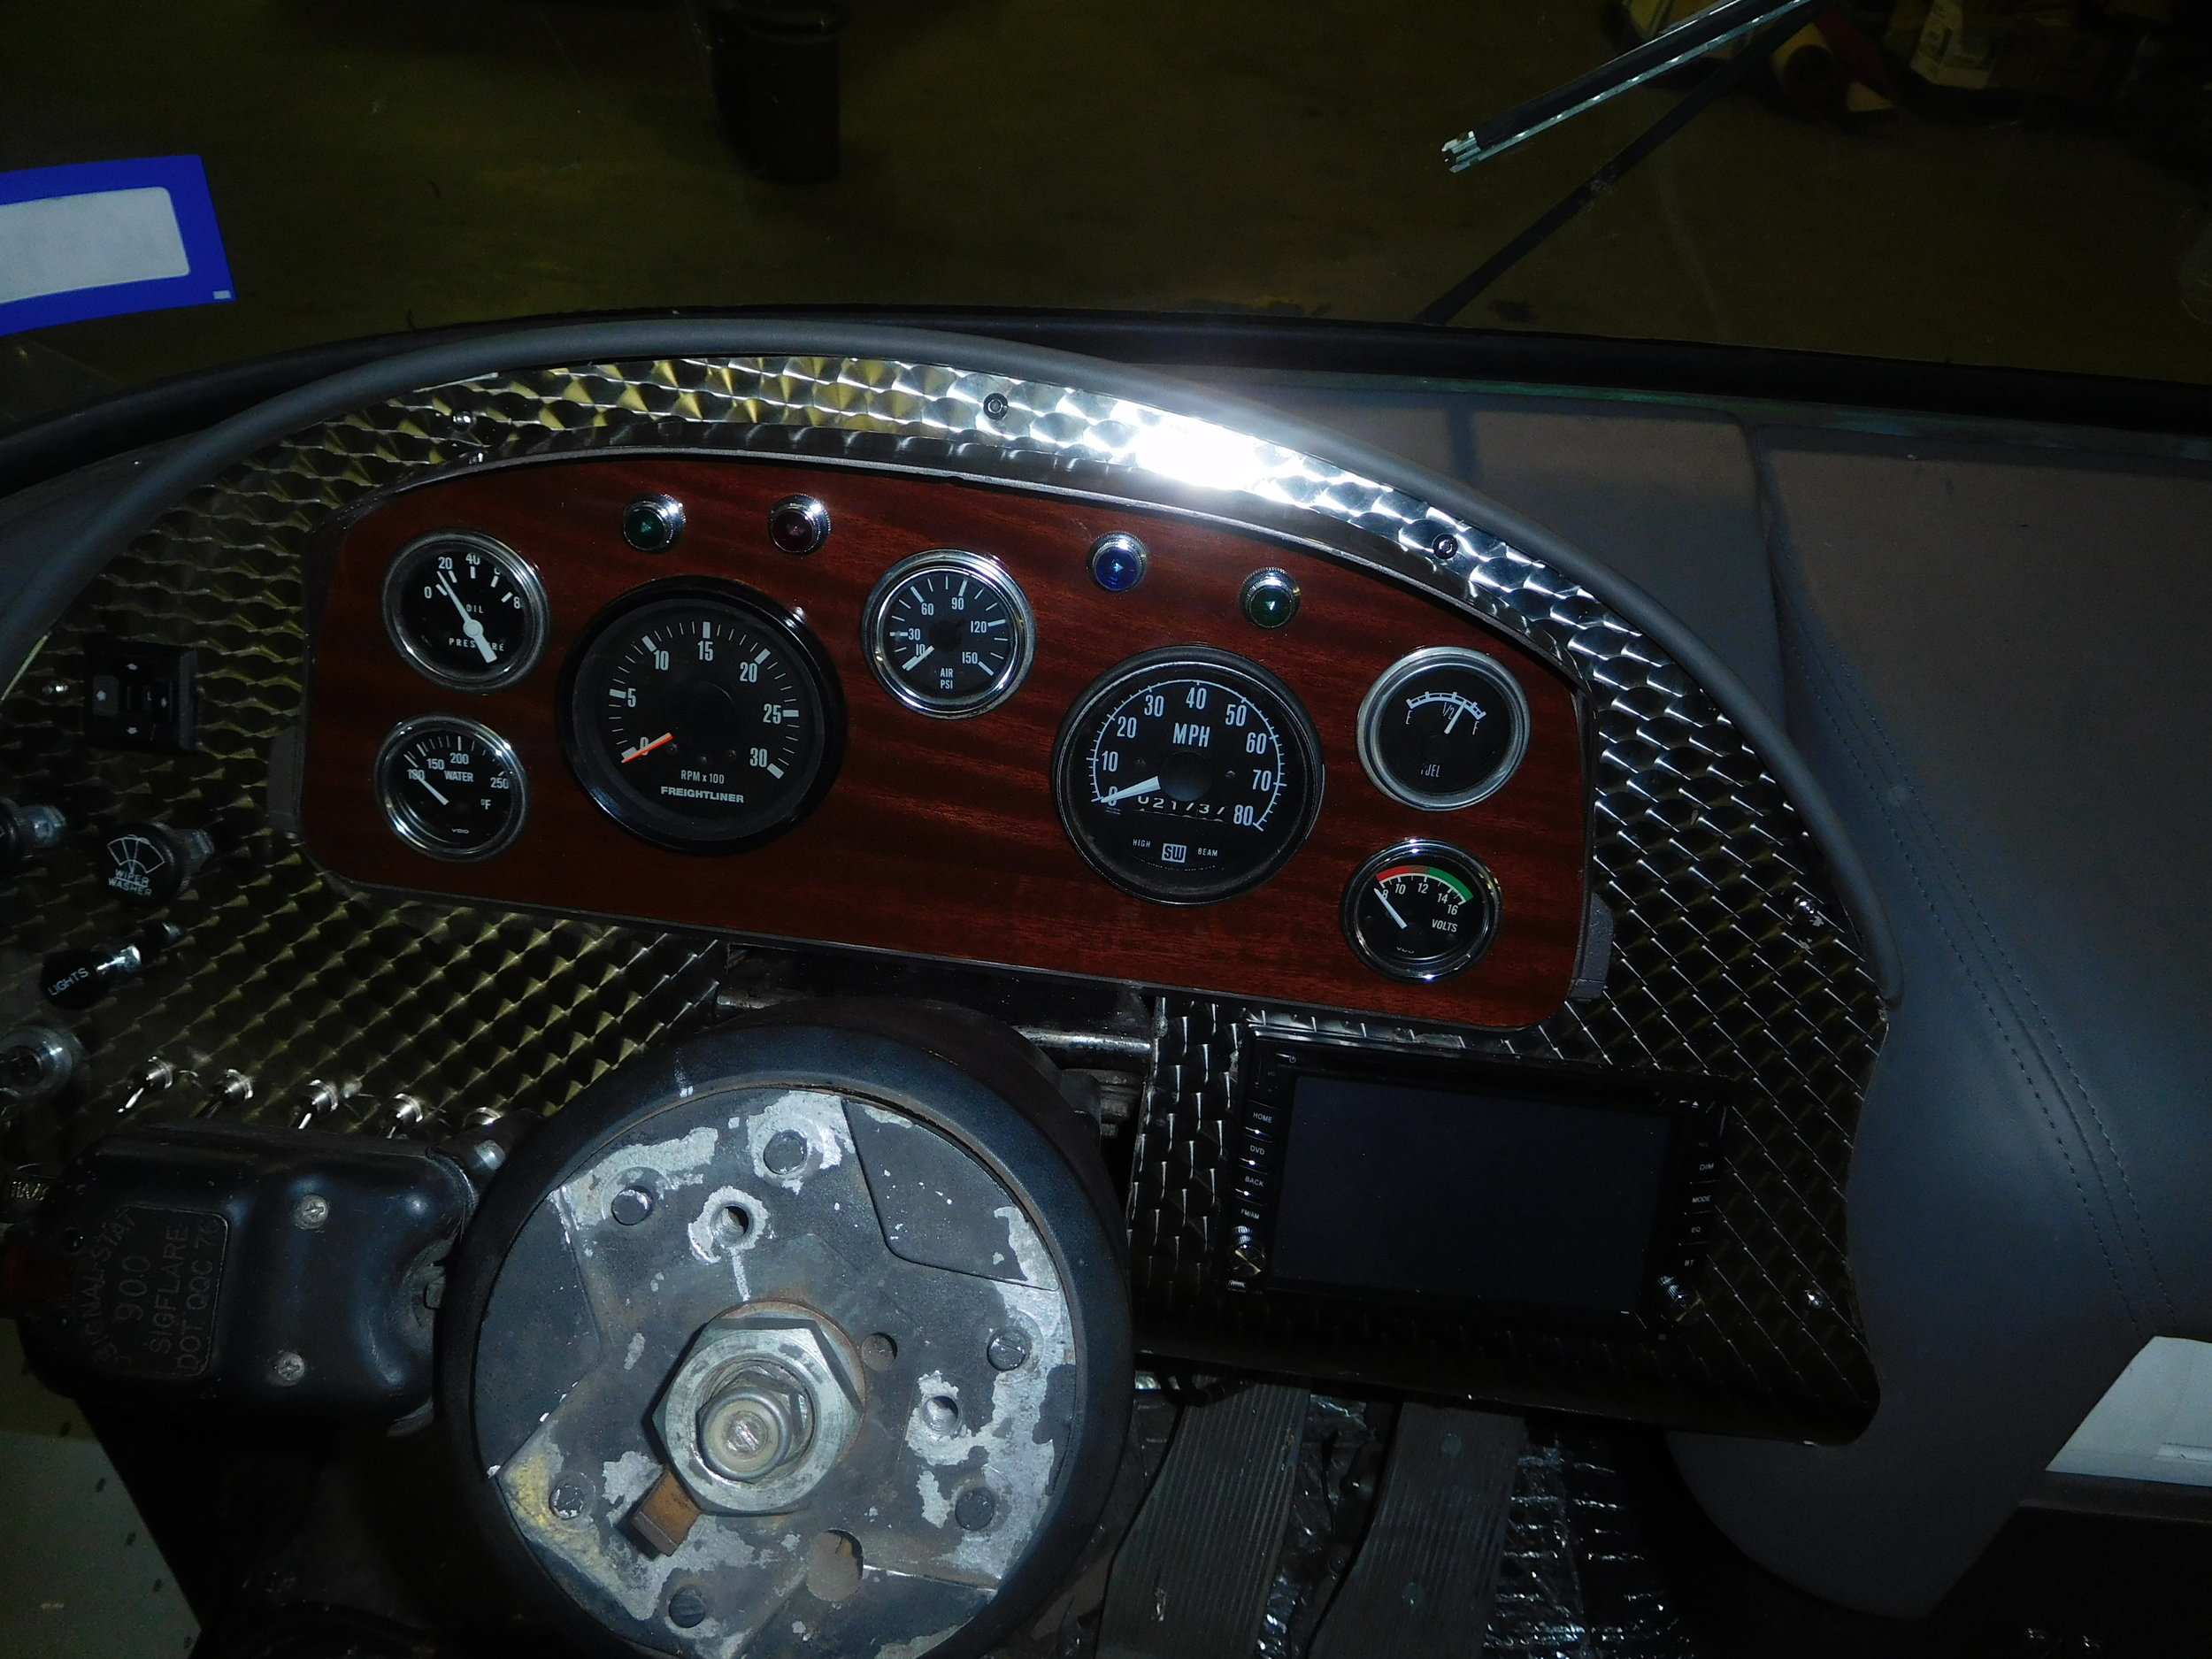 The new dash with mahogany insert and stainless engine turned panel